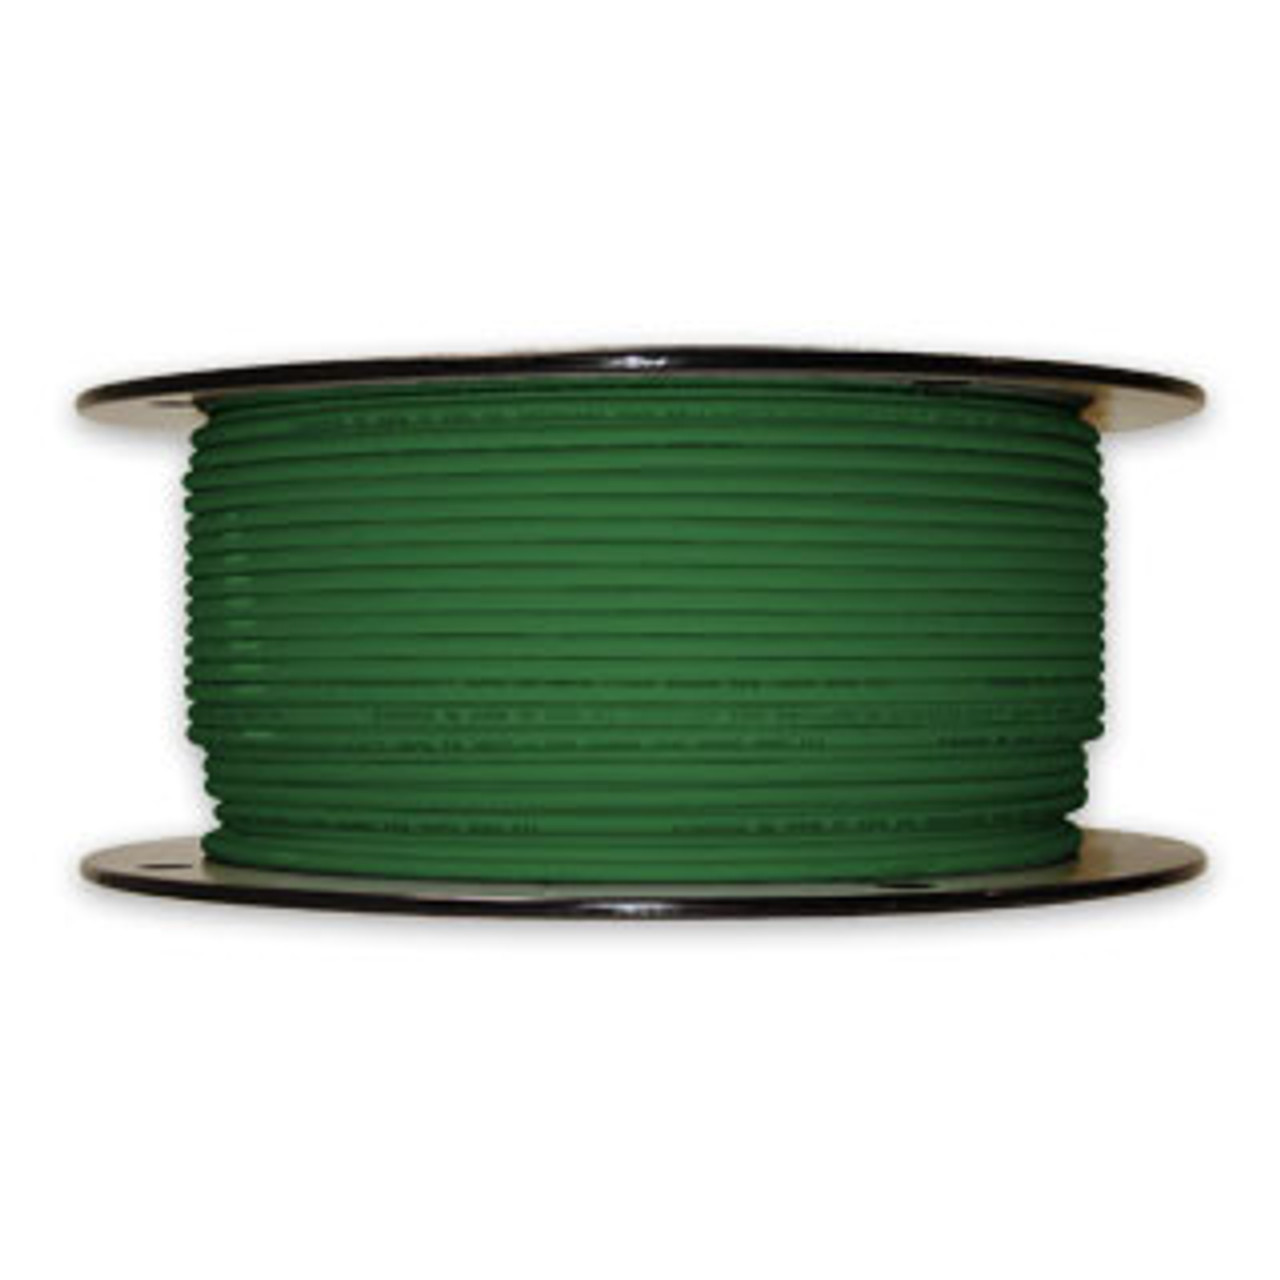 Arctic Ultraflex Cold Weather Flexible Wire 500 Foot Spool 12 AWG Green Single Conductor Wire tinned fine strand 100% copper